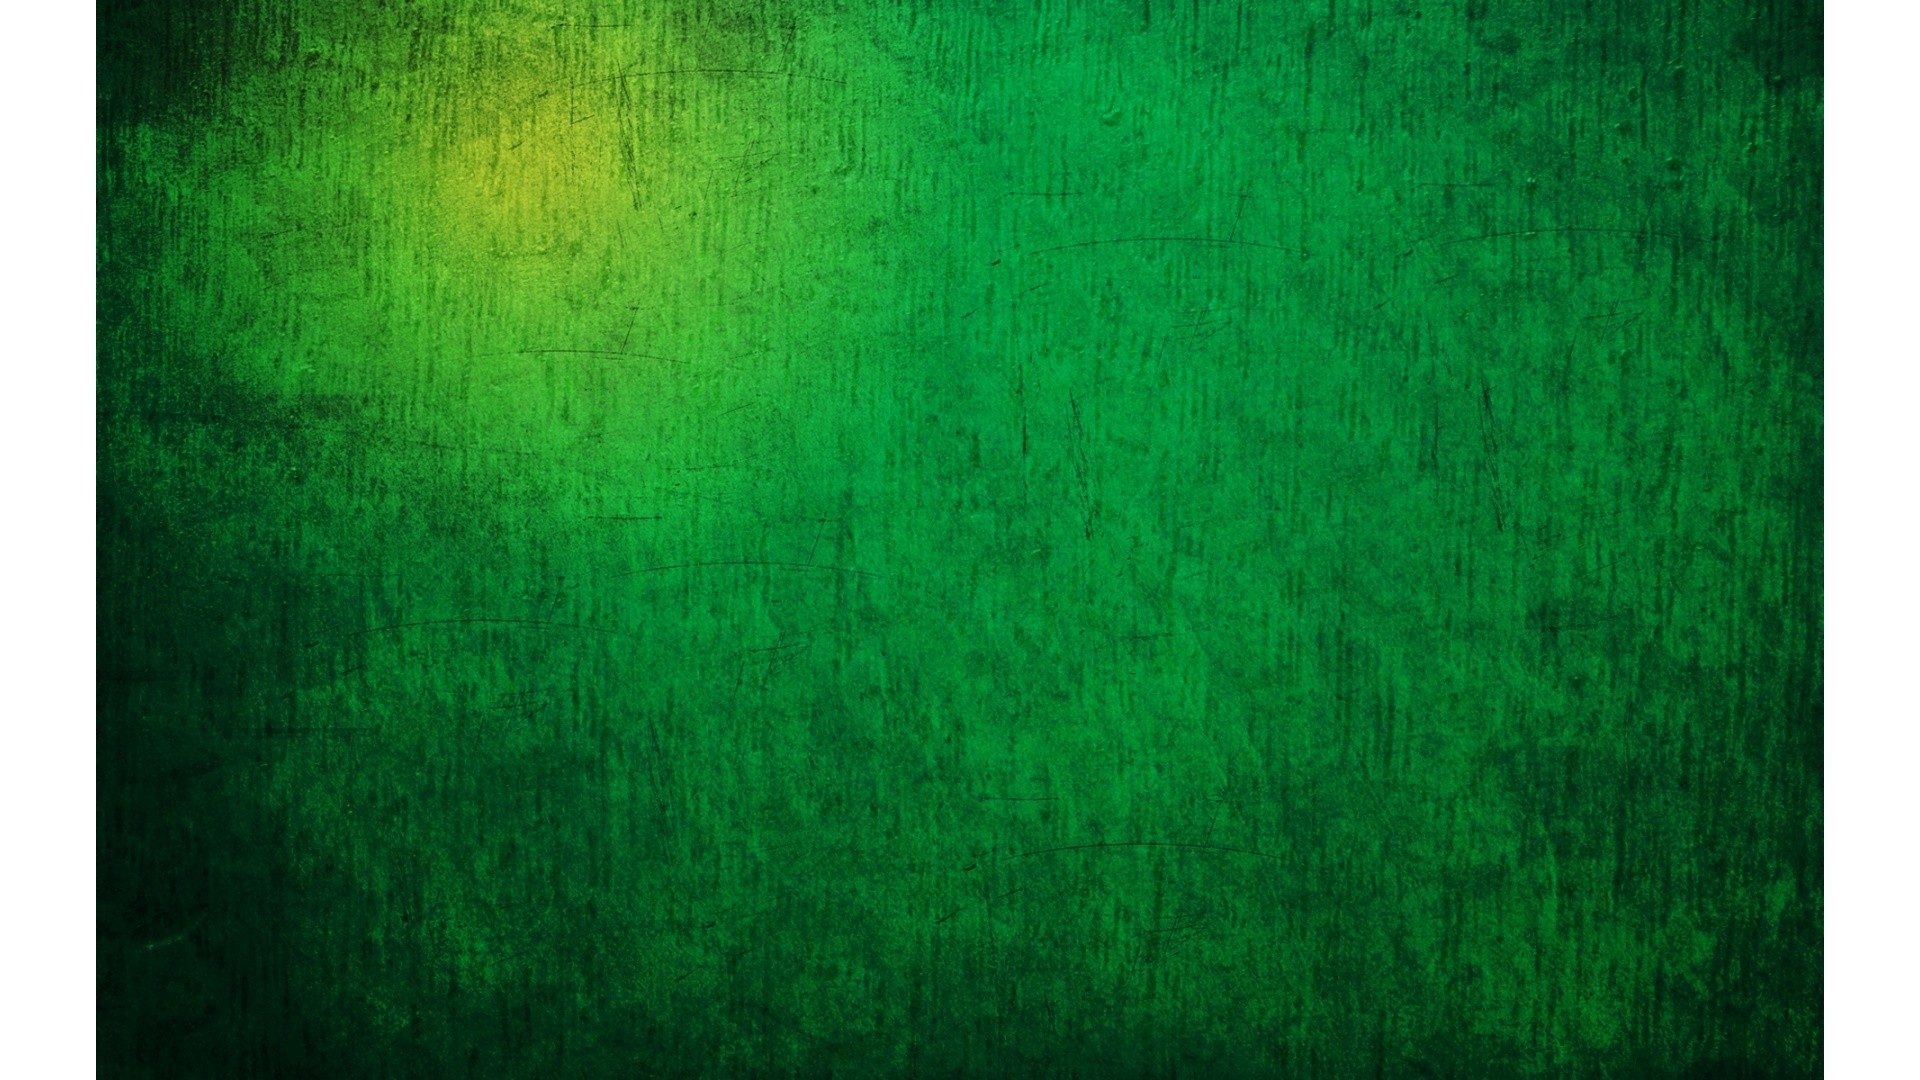 Green Grunge background ·① Download free stunning High ...